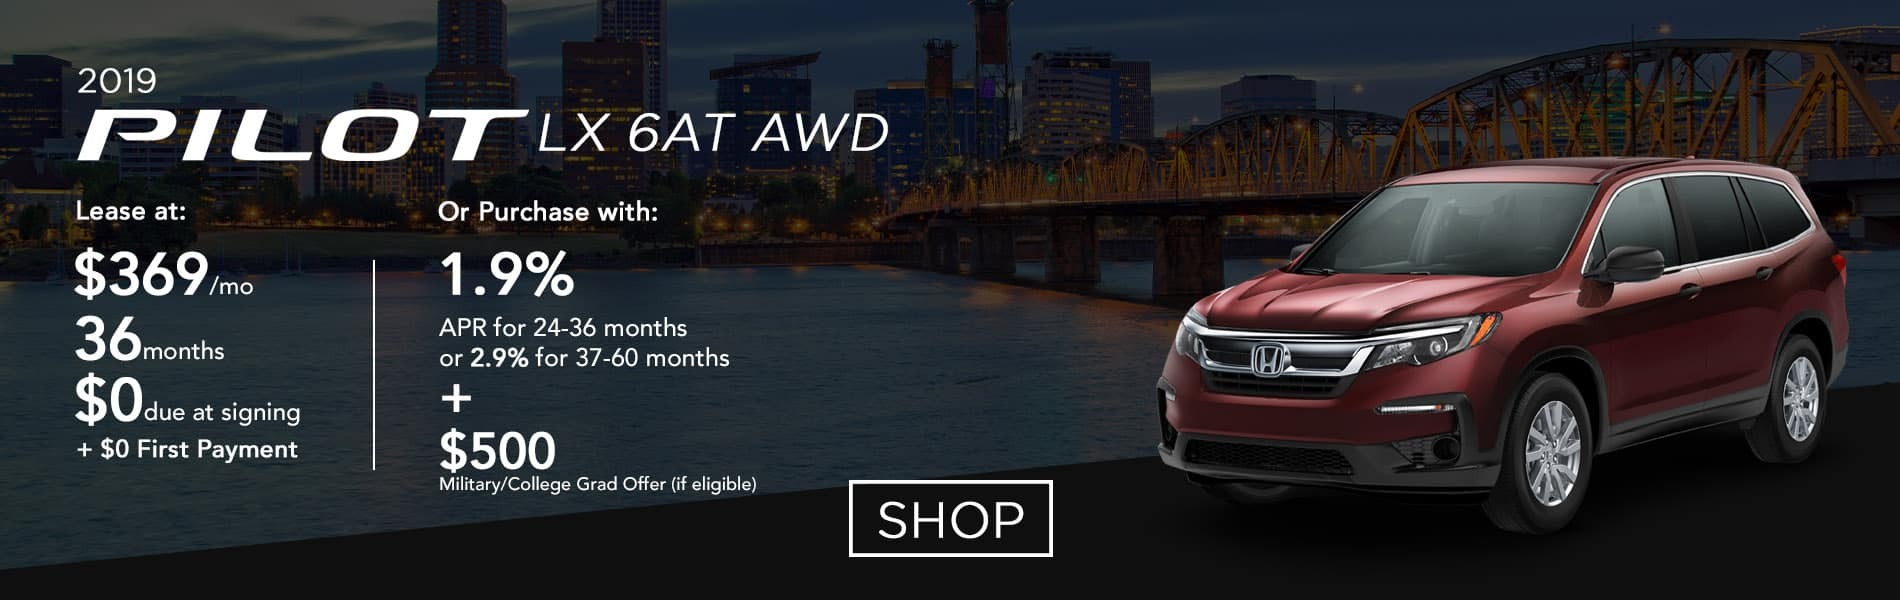 Lease a 2019 Pilot LX 6AT AWD for $369 per month or purchase with 1.9% APR up to 36 months